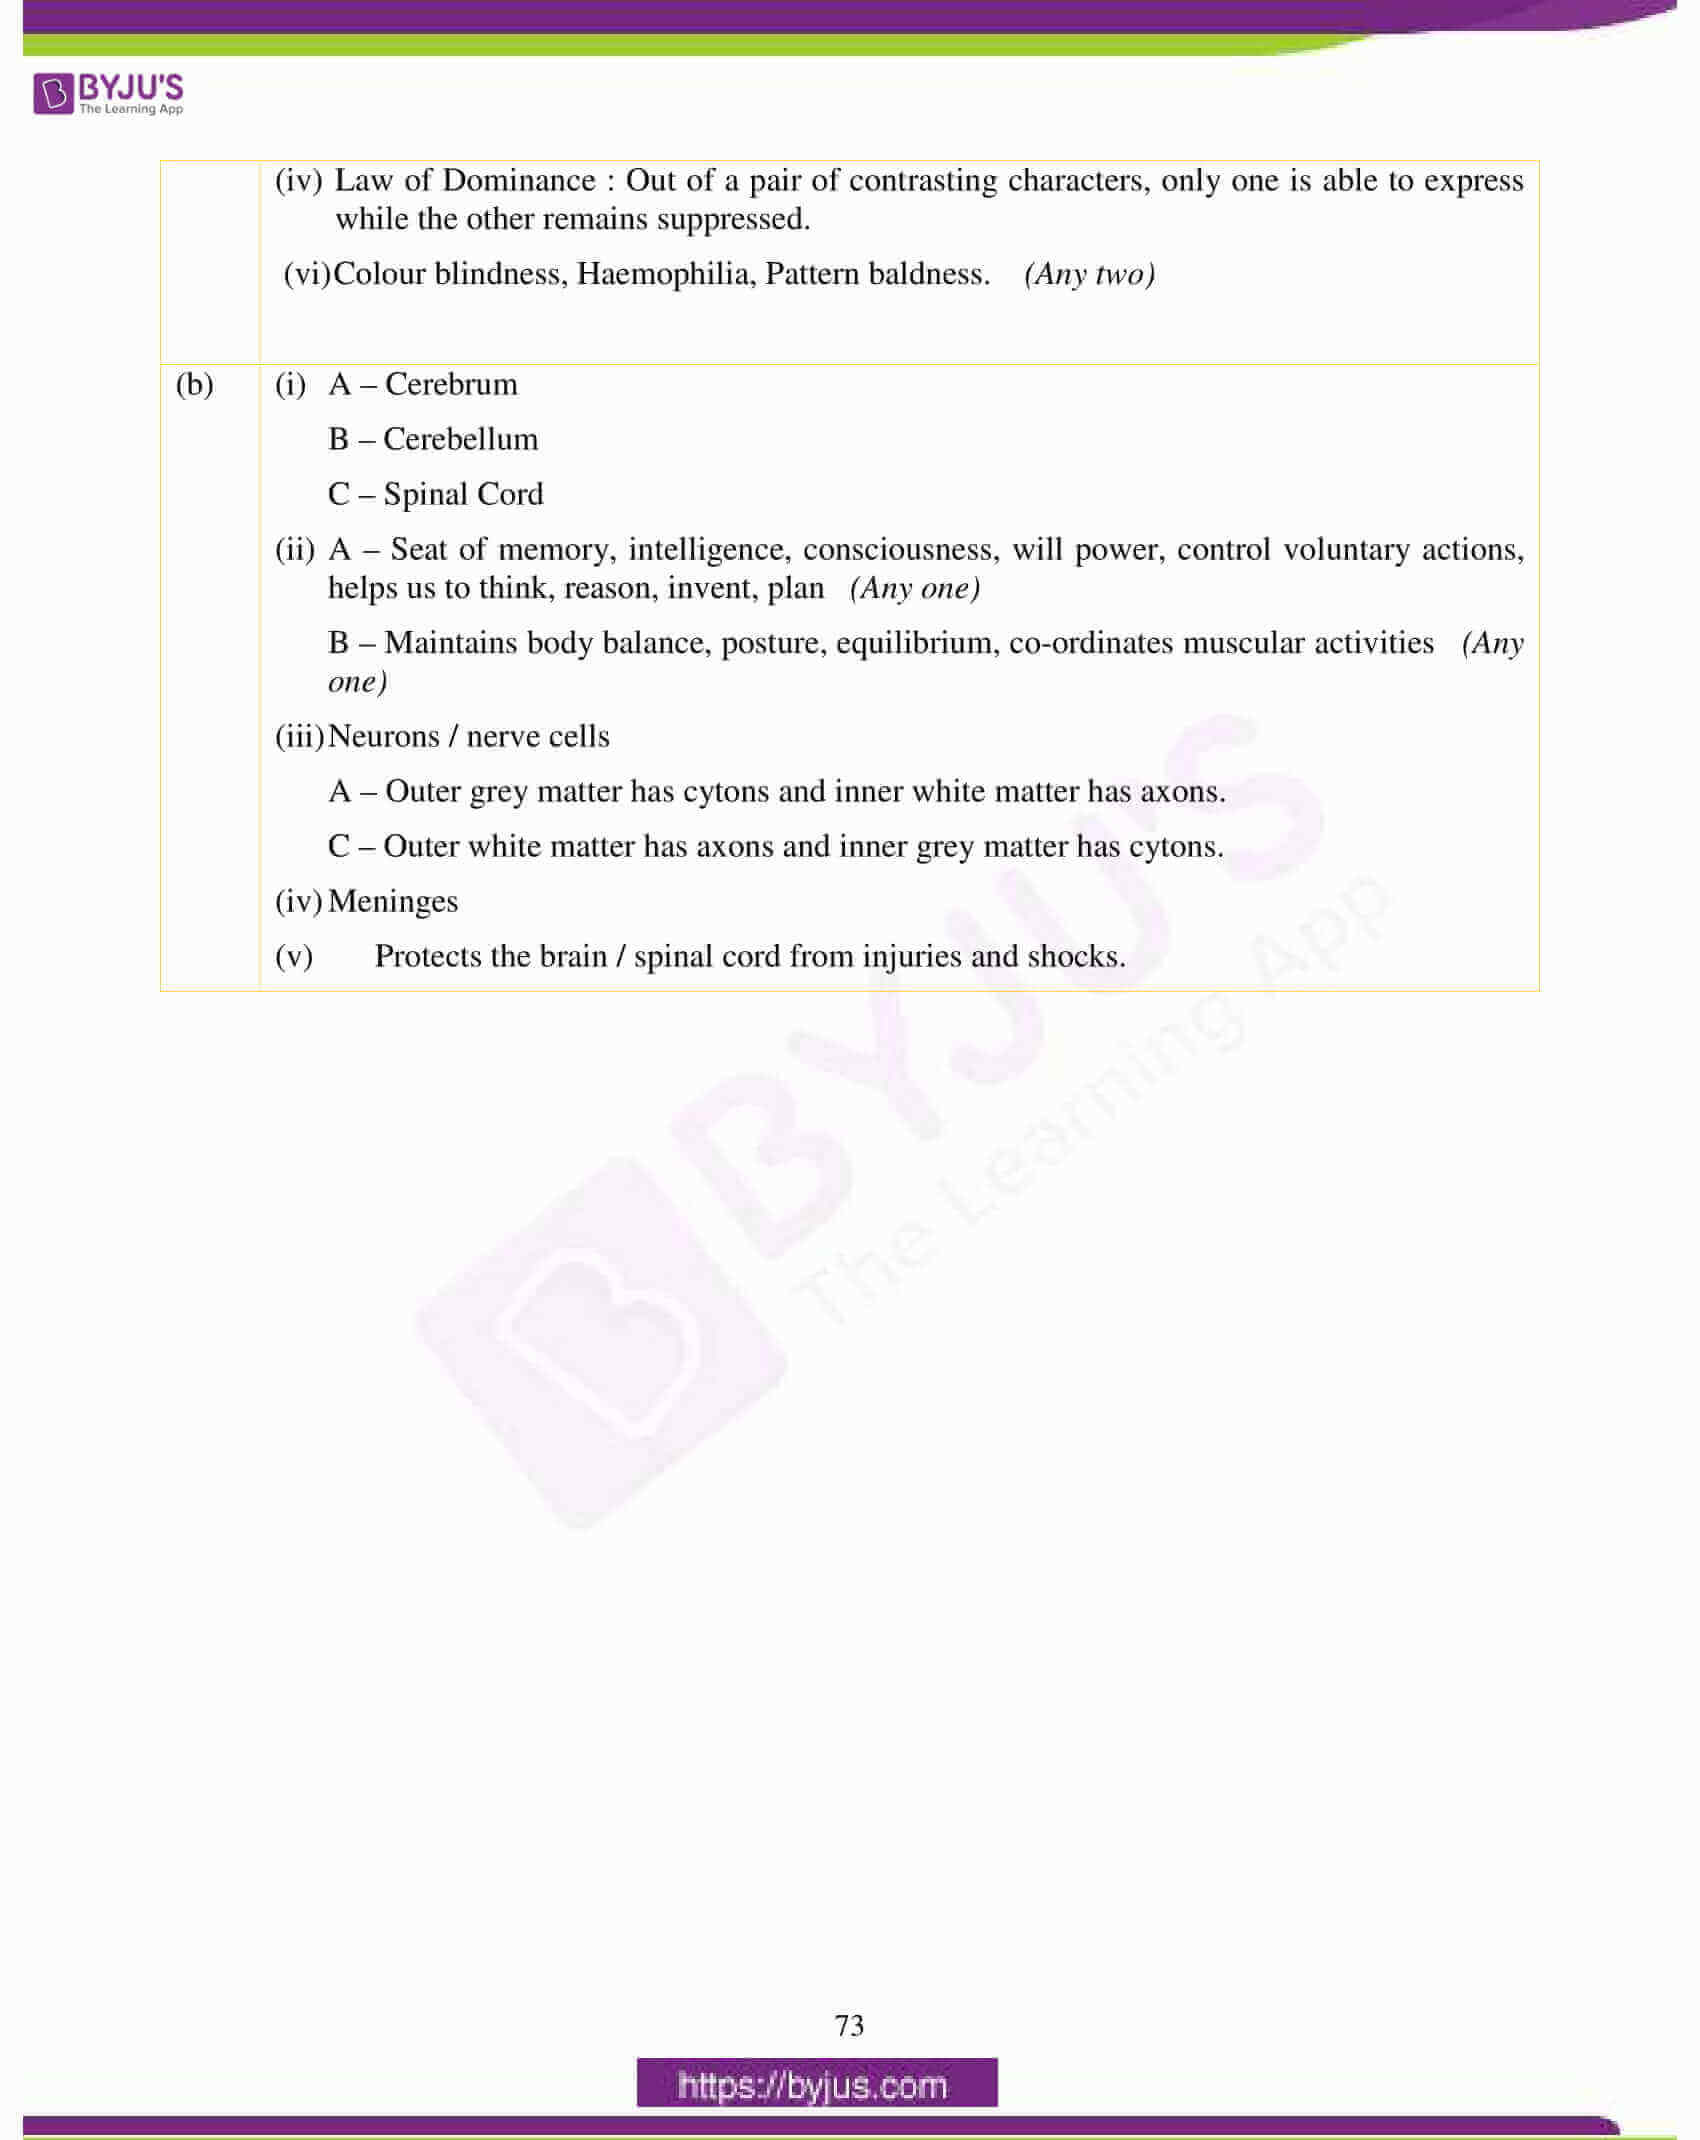 icse class 10 biology question paper solution 2017 23